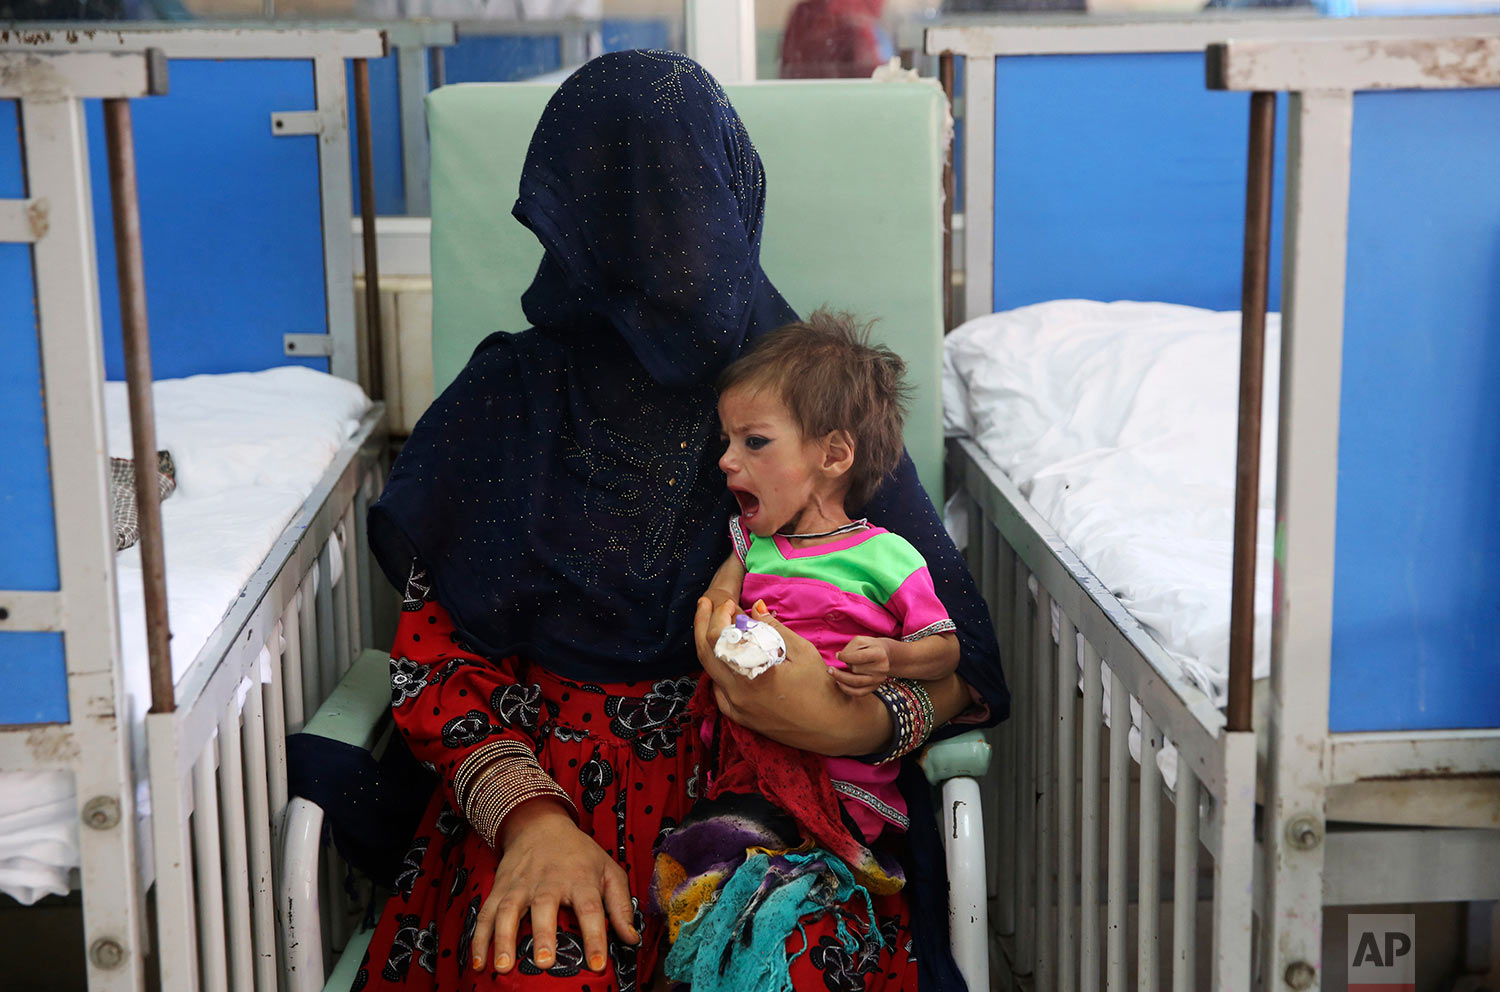 A woman holds her malnourished girl in a ward at the Indira Gandhi hospital in Kabul, Afghanistan, Aug. 21, 2019. (AP Photo/Rafiq Maqbool)